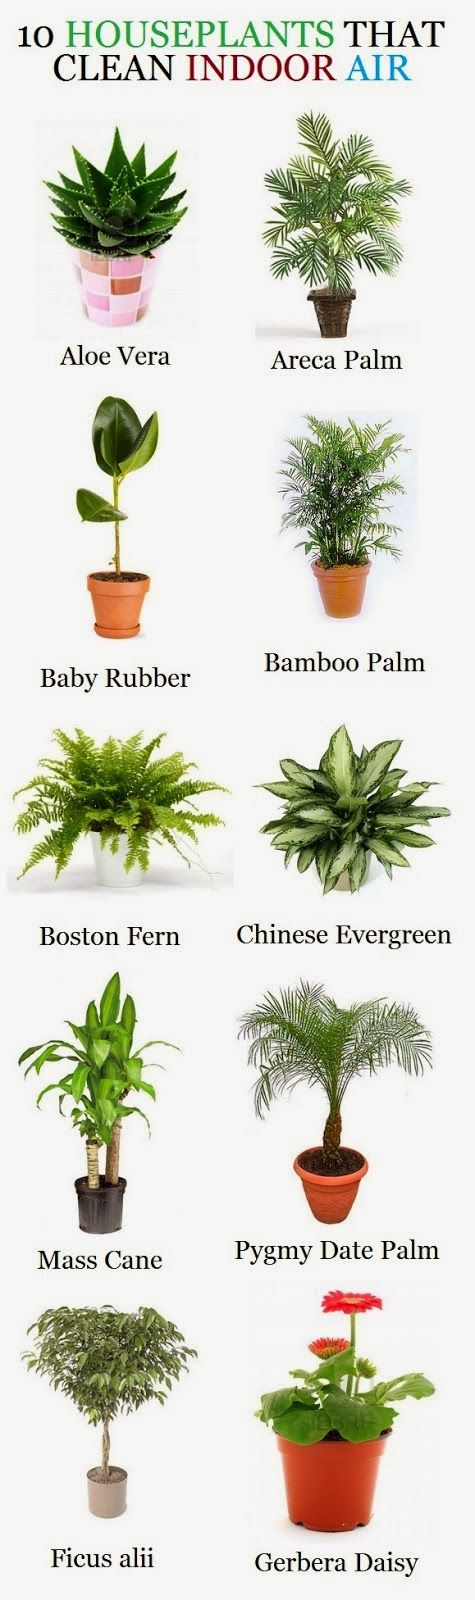 Aloe Vera - Not only can it be used for burns on the skin, it is also known to remove formaldahyde from the air. Areca Palm - General air purifier, especially as it grows larger. It's known for ...